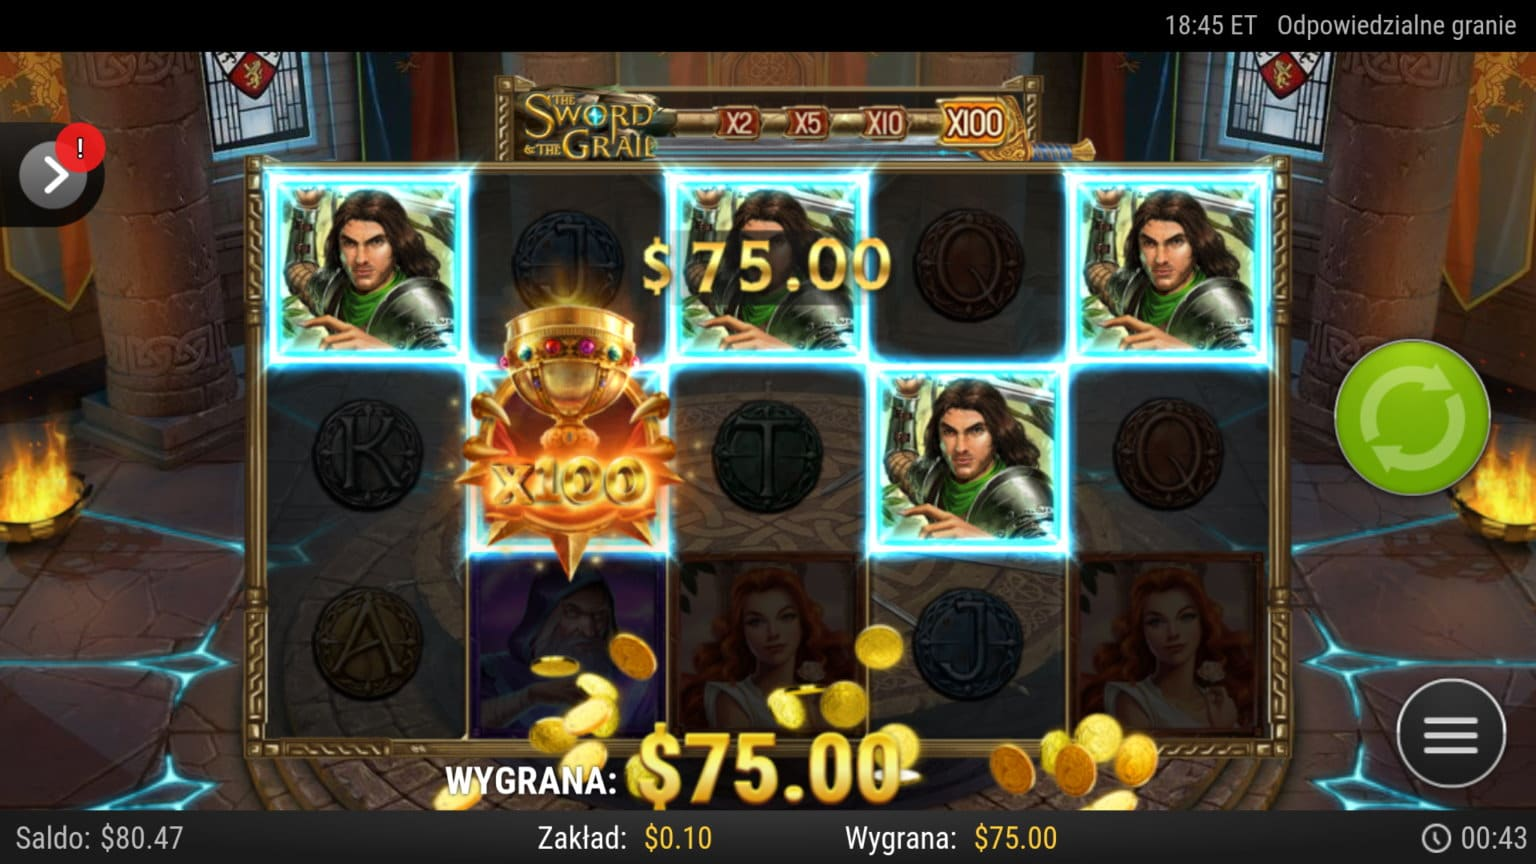 The Sword and the grail slot big win picture